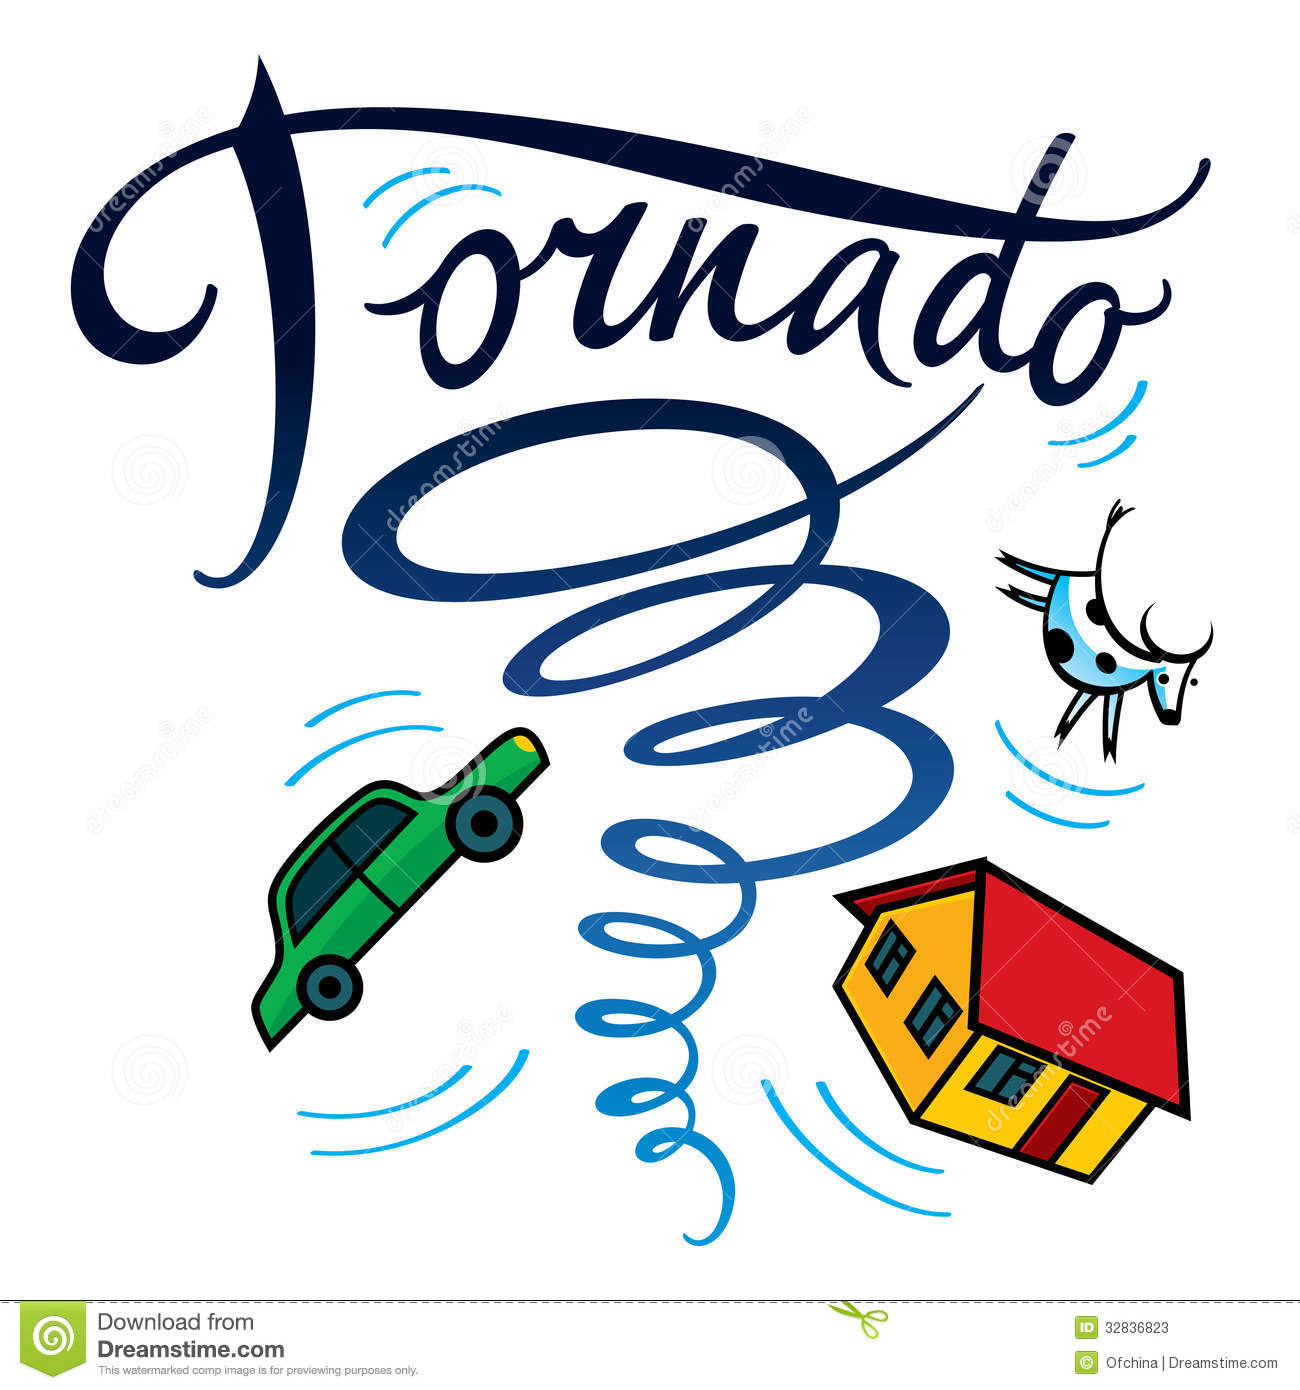 Disaster clipart tornado Clipart Storm Educational Collection clipart